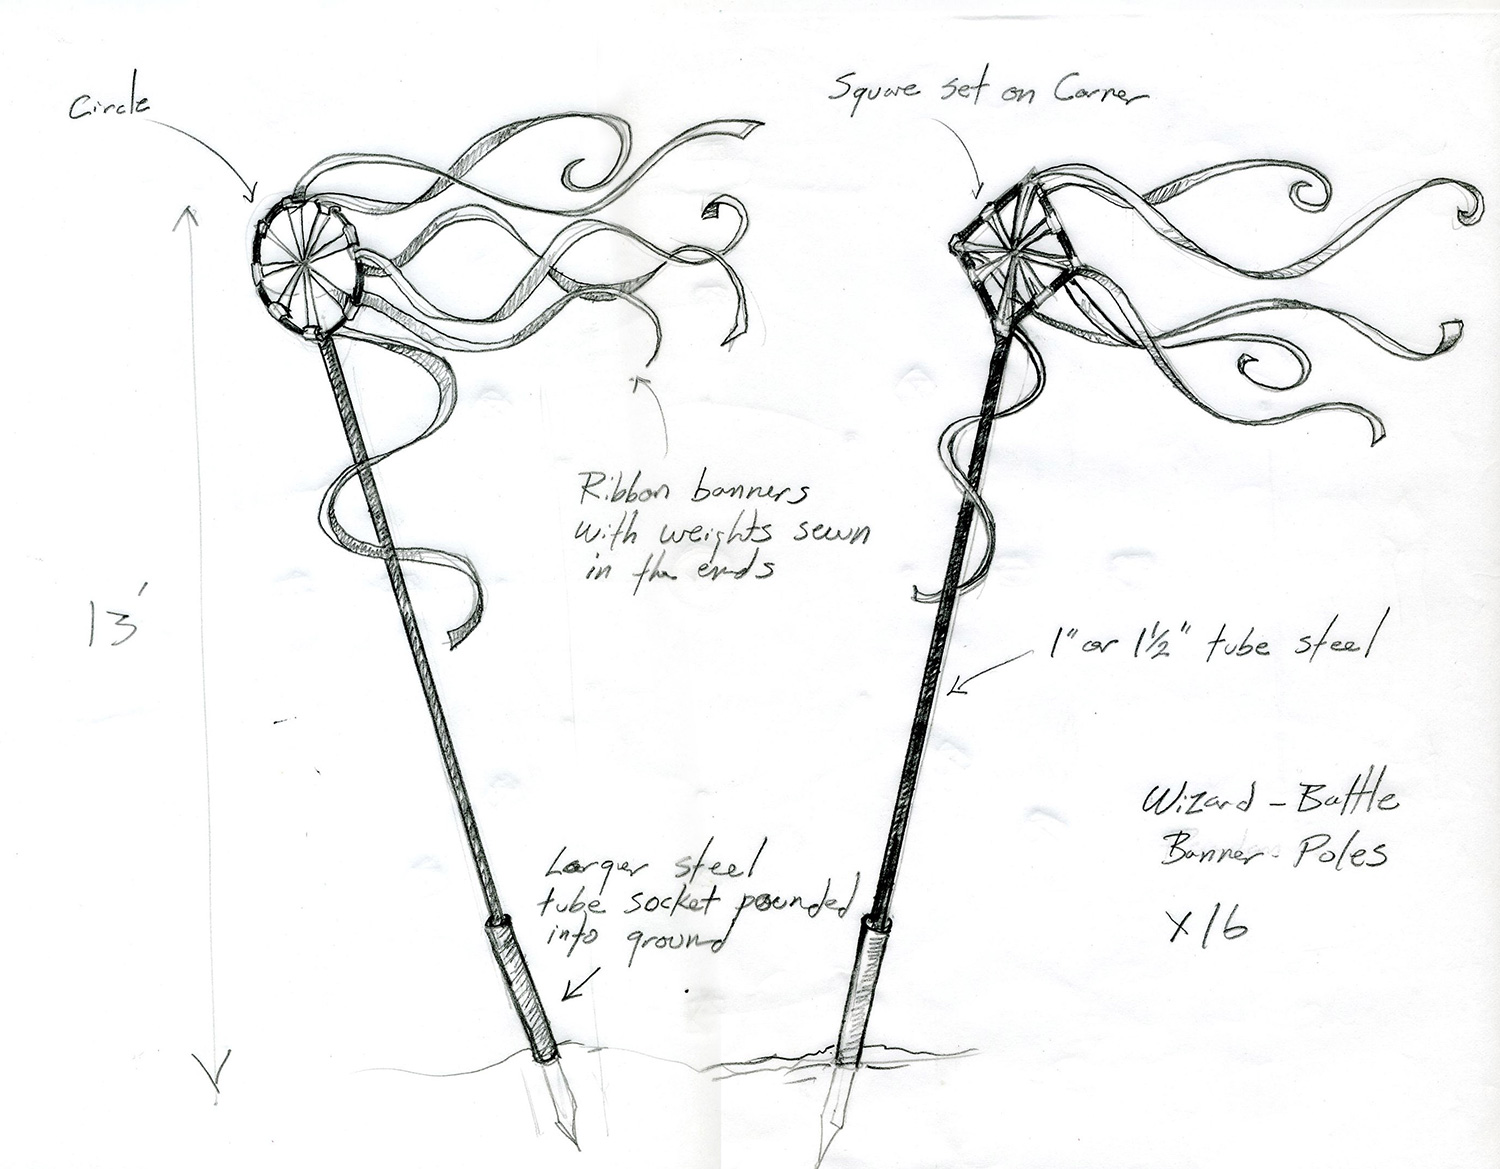 """Here is a working drawing for a ring of mystical ribbon-banners that surrounded the concentric stone circles for the """"Wizard Battle"""" scene from """"The Wizards of Waverly Place: The Movie""""(2009)."""